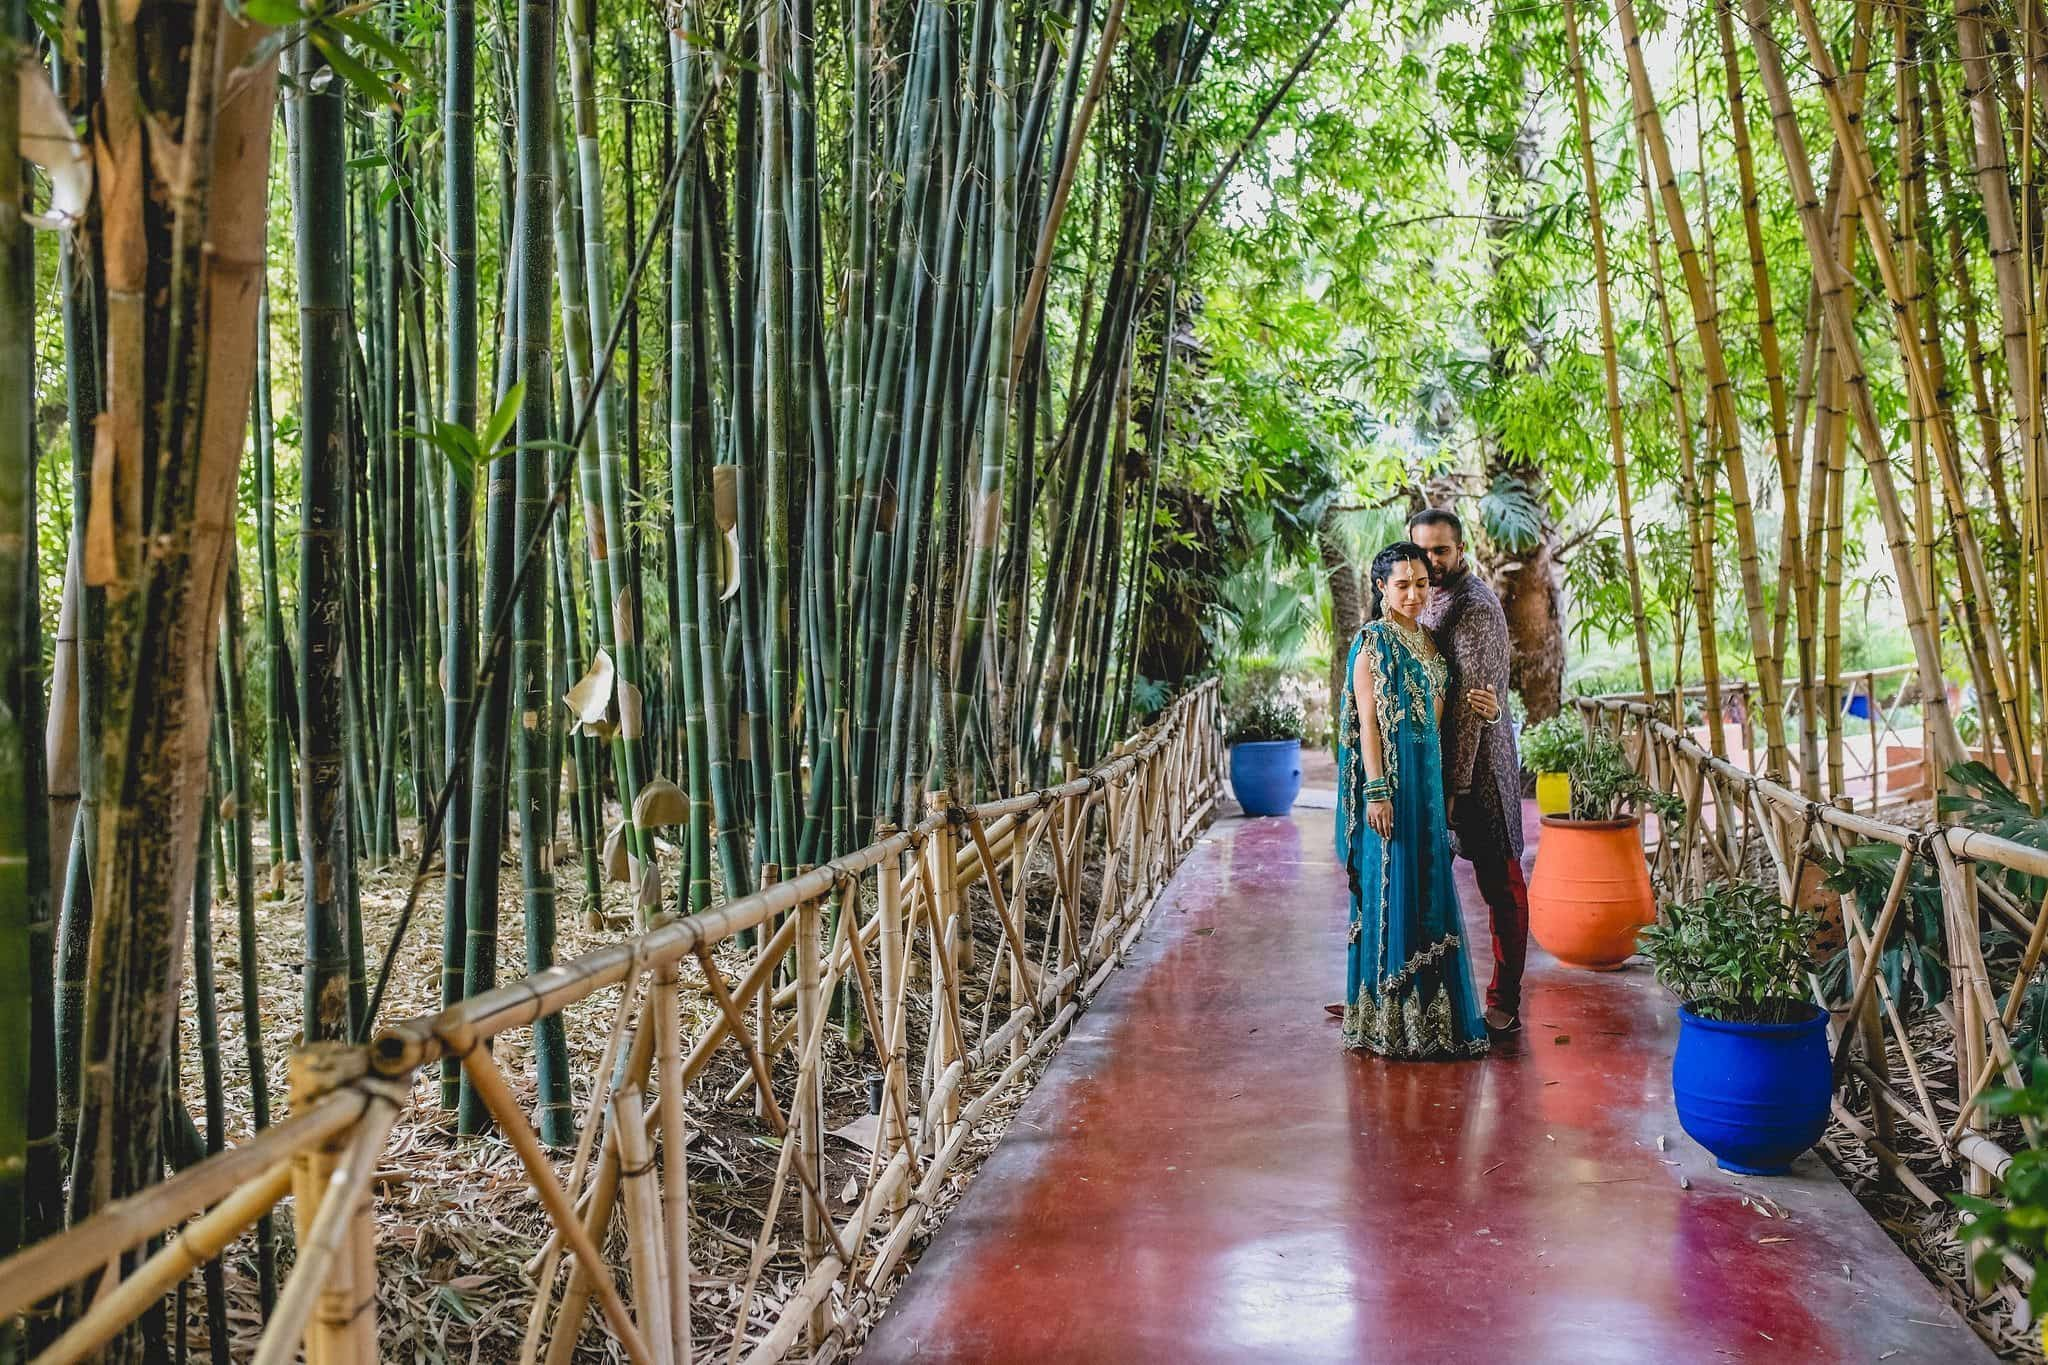 Indian wedding couple at the Majorelle Gardens surrounded by tall Bamboo